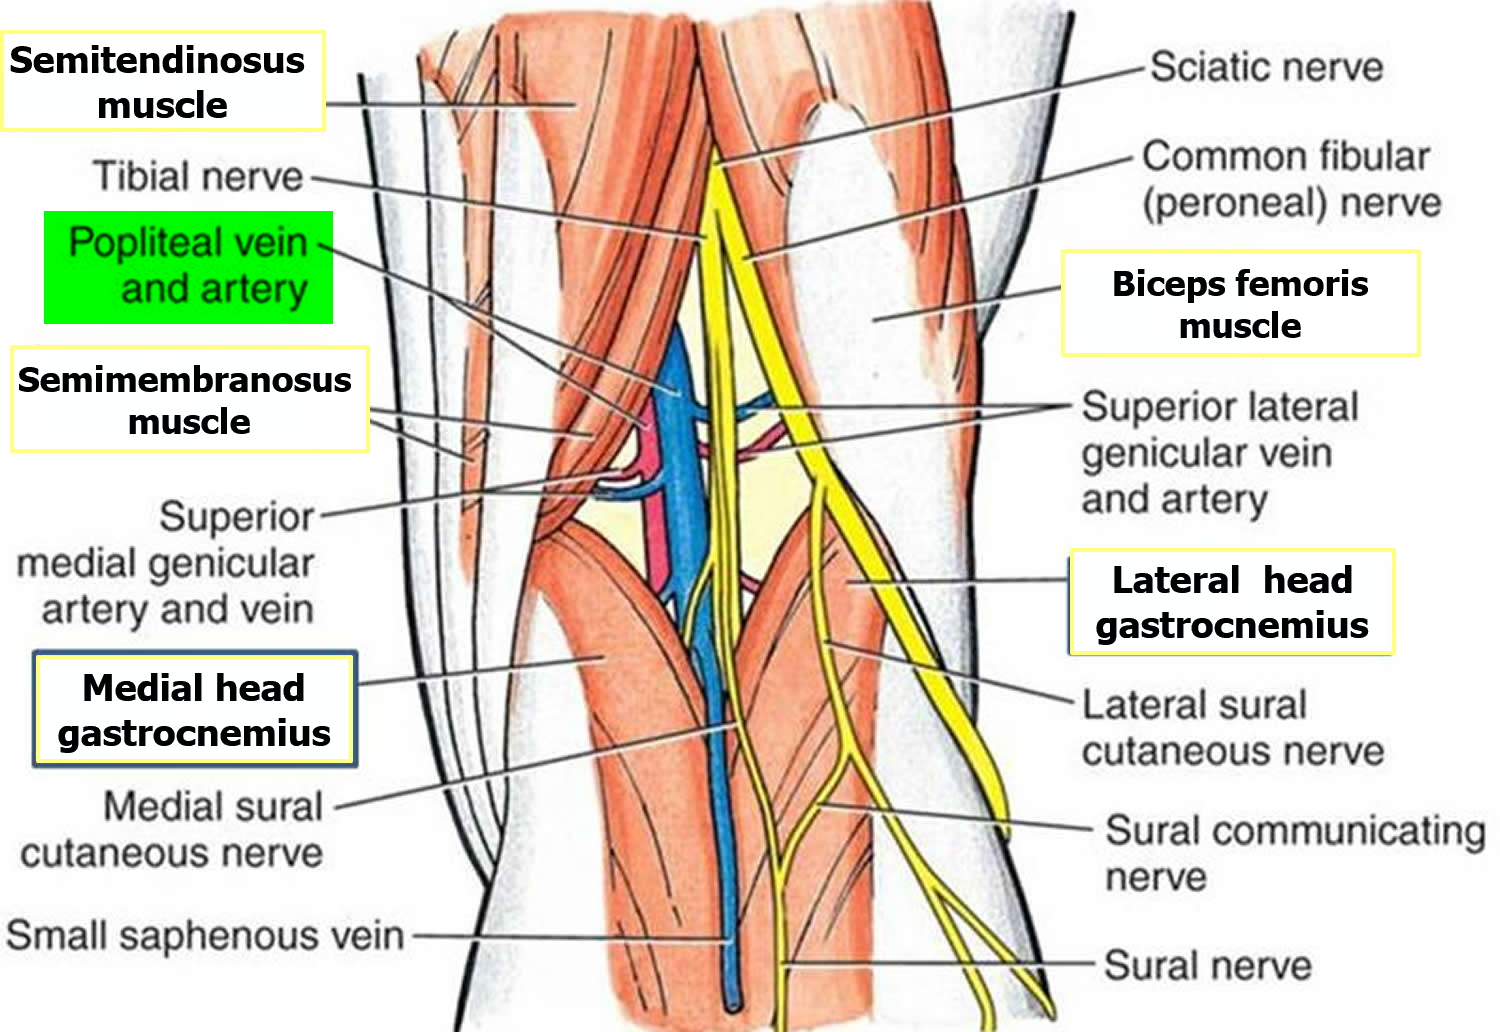 Anatomy of popliteal fossa